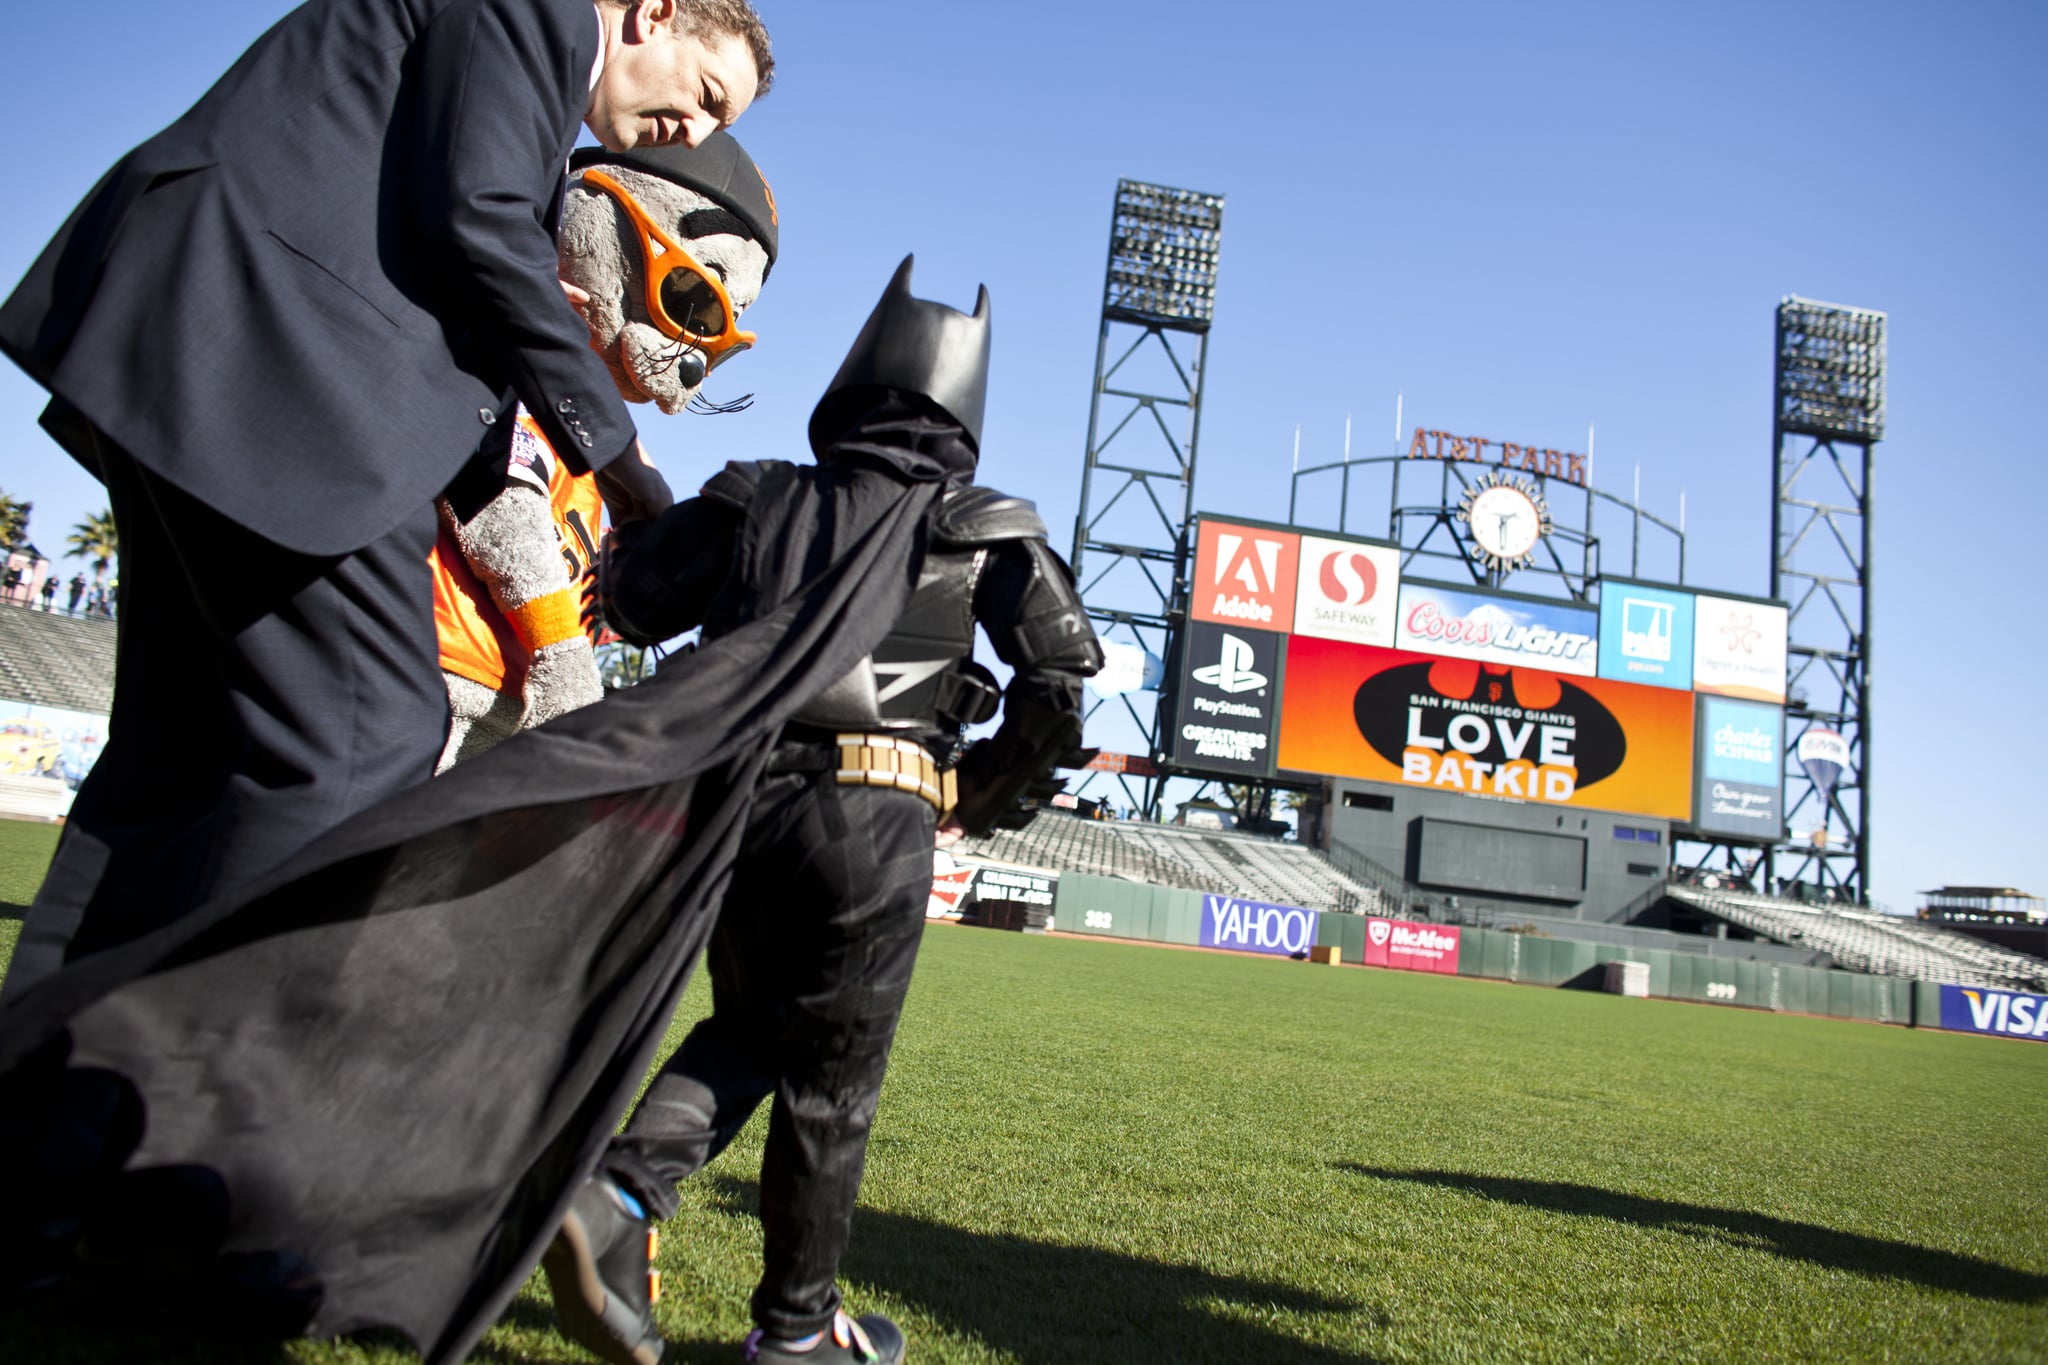 Batkid saved Lou Seal, the Giants mascot, who was kidnapped by the Penguin.